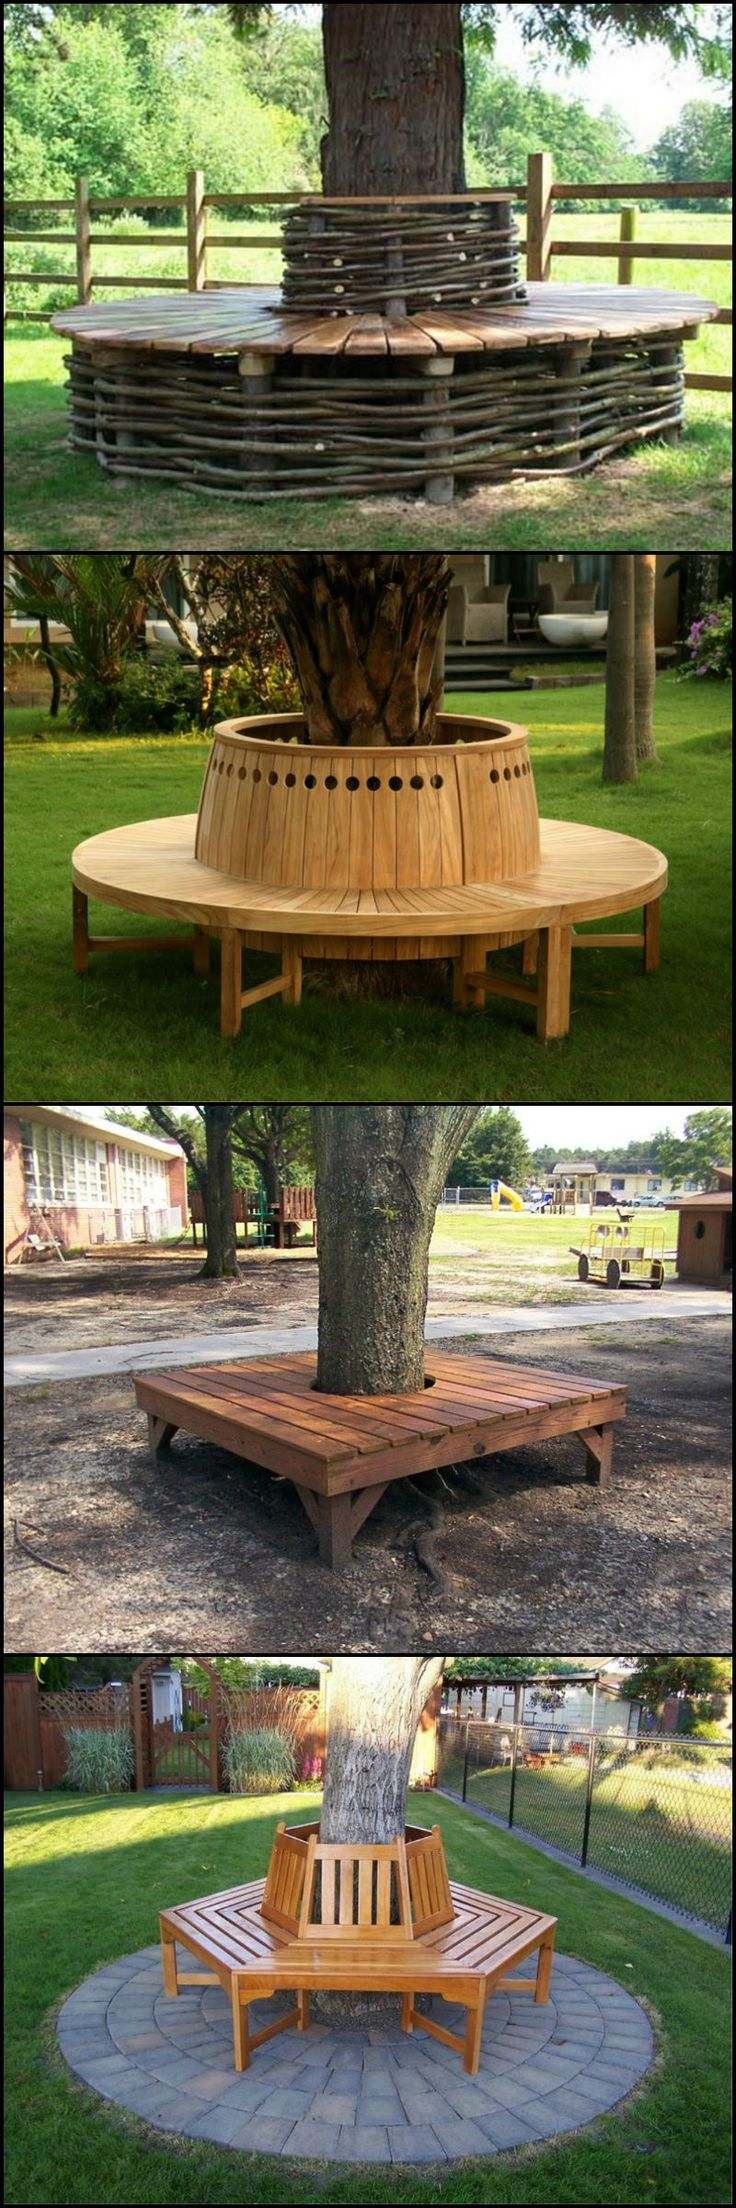 Do you have a favorite park where you love to spend a warm afternoon sitting under the shade of a tree?  Wouldn't it be nice to create that atmosphere in your own yard?  A tree bench will make it a reality! Check out the full gallery for more inspiration:  http://theownerbuildernetwork.co/kbik